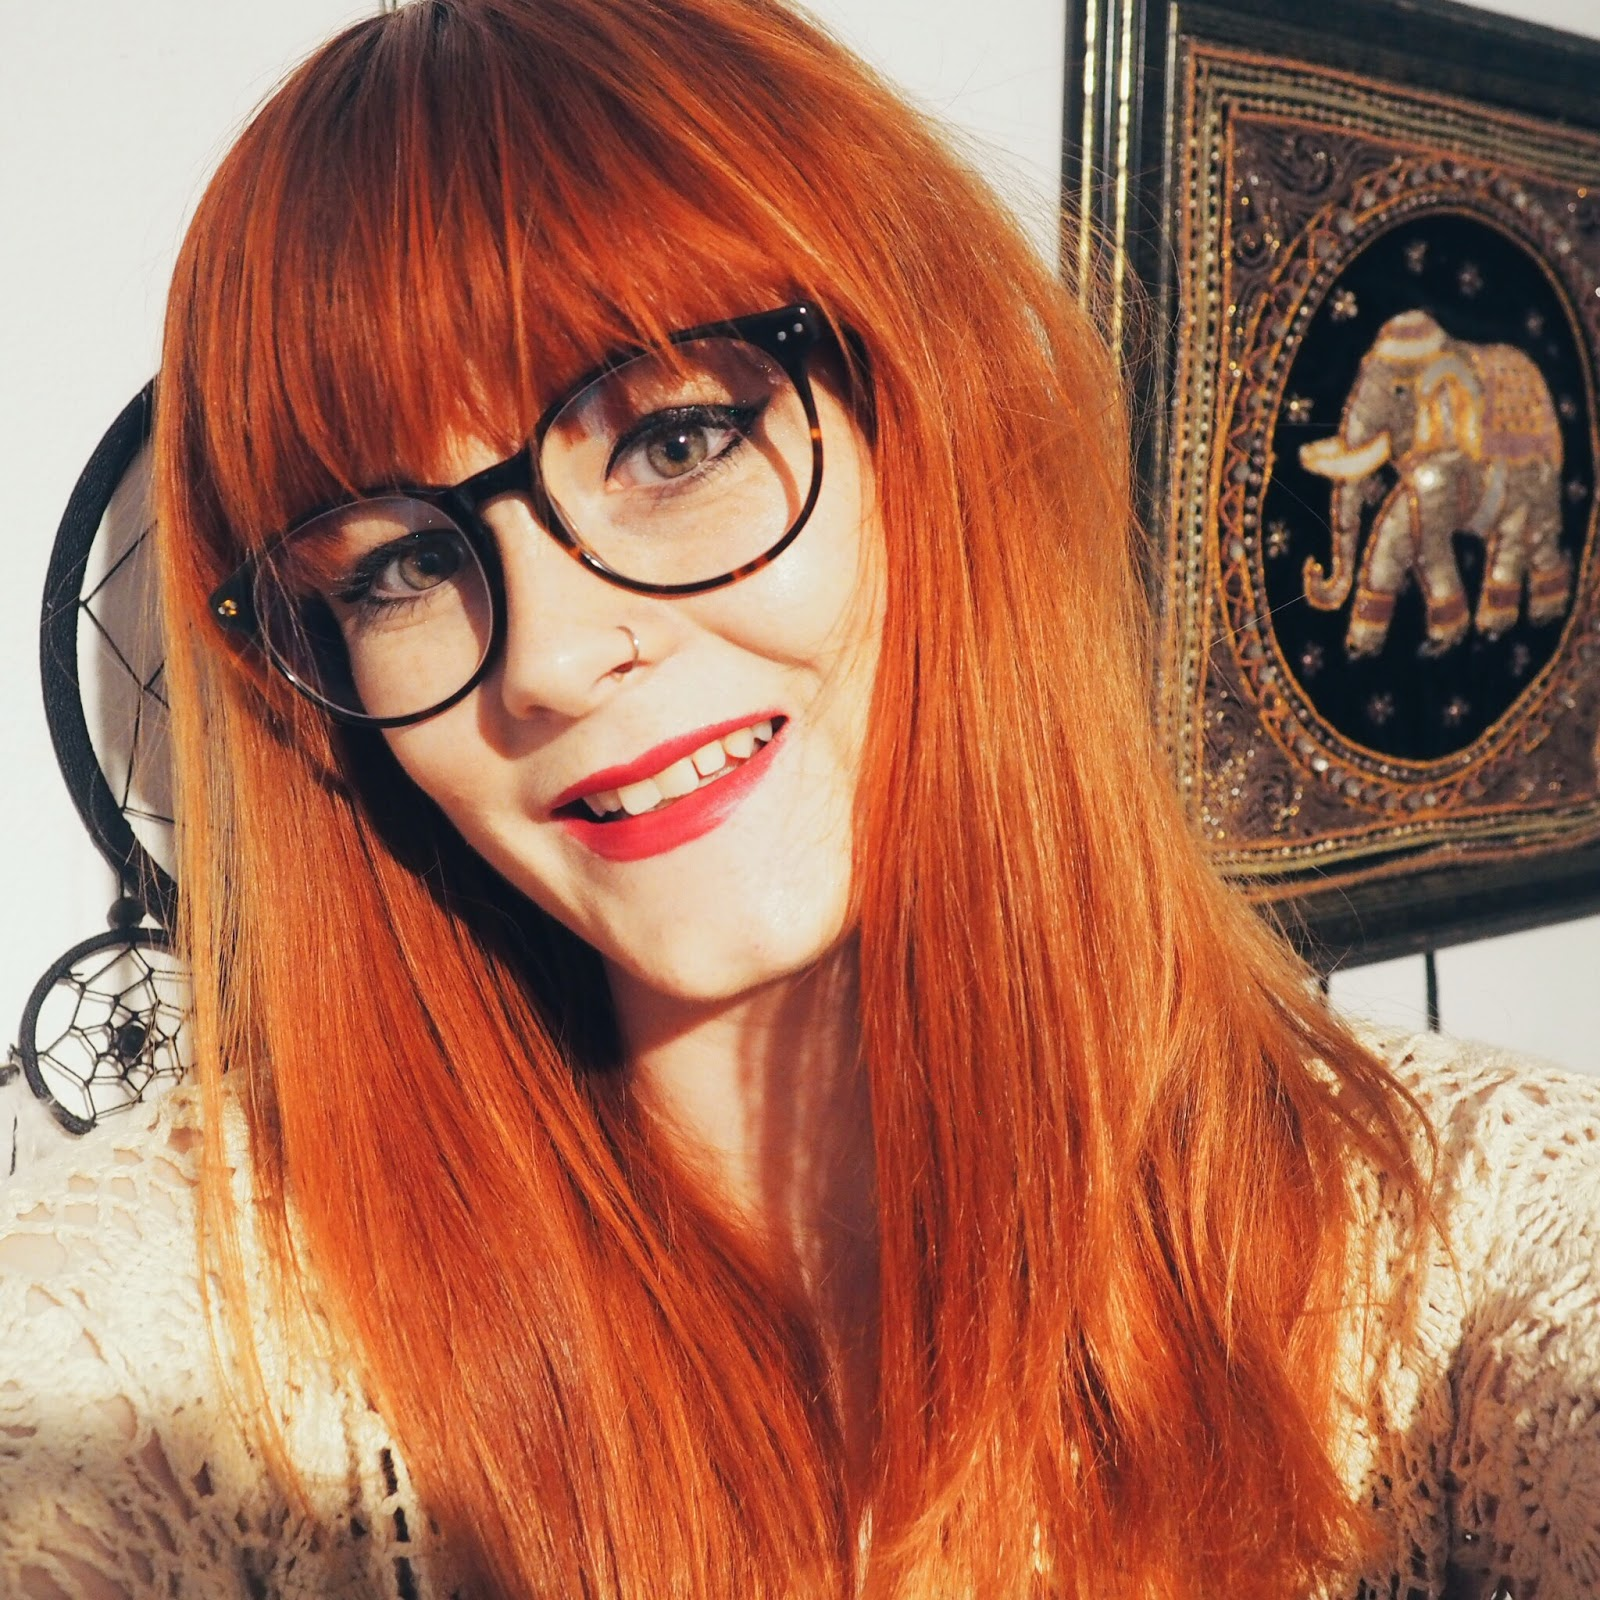 Scout 70's Glasses Selfie Fashion Blogger Red Hair